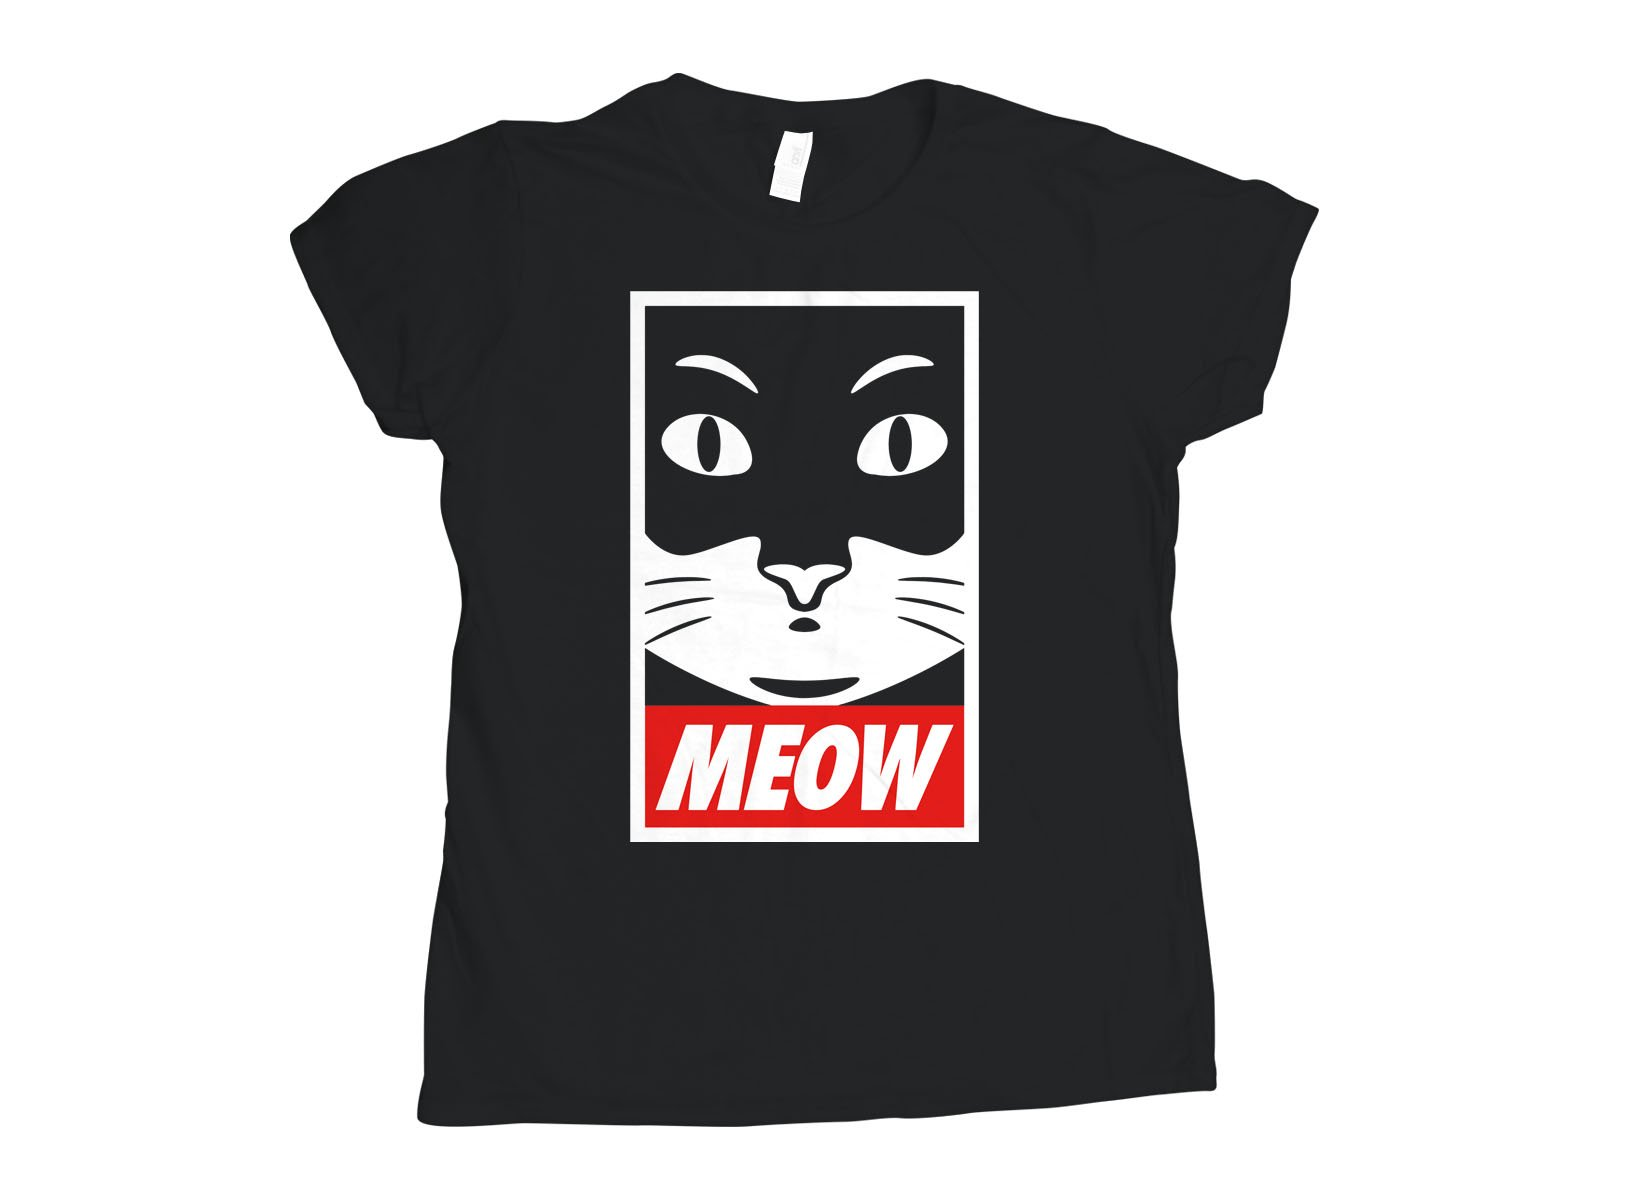 Meow on Womens T-Shirt